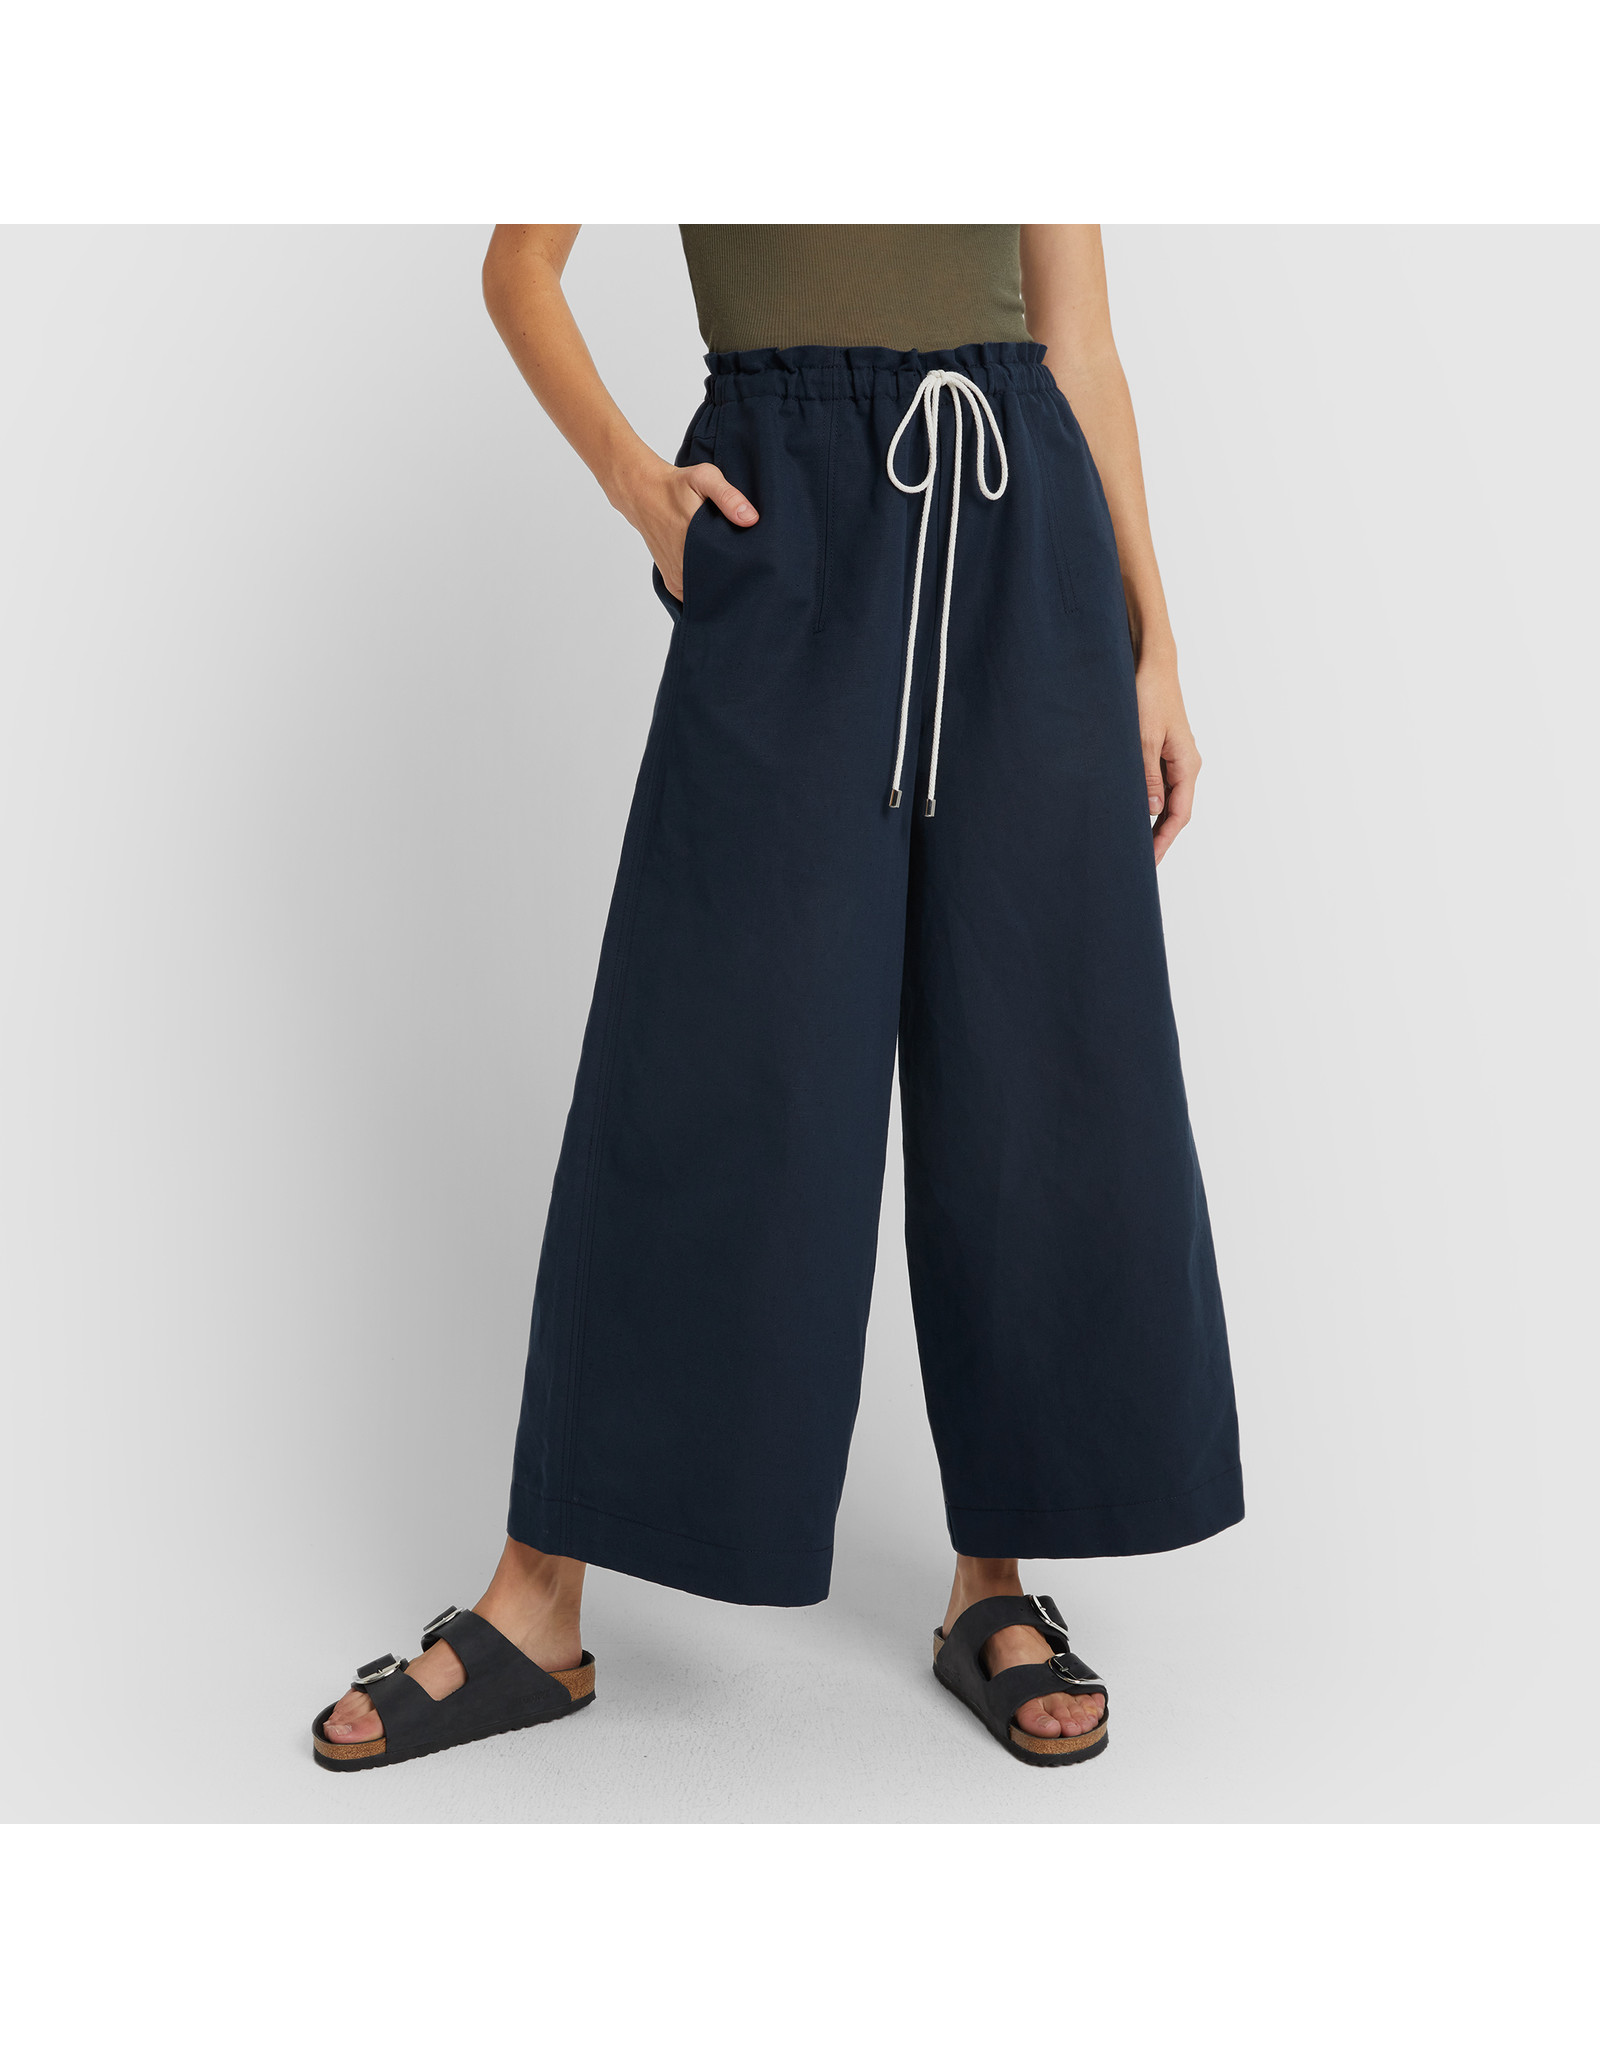 G. Label G. Label Dani Wide Leg Drawstring Pant (Color: Navy, Size: 6)